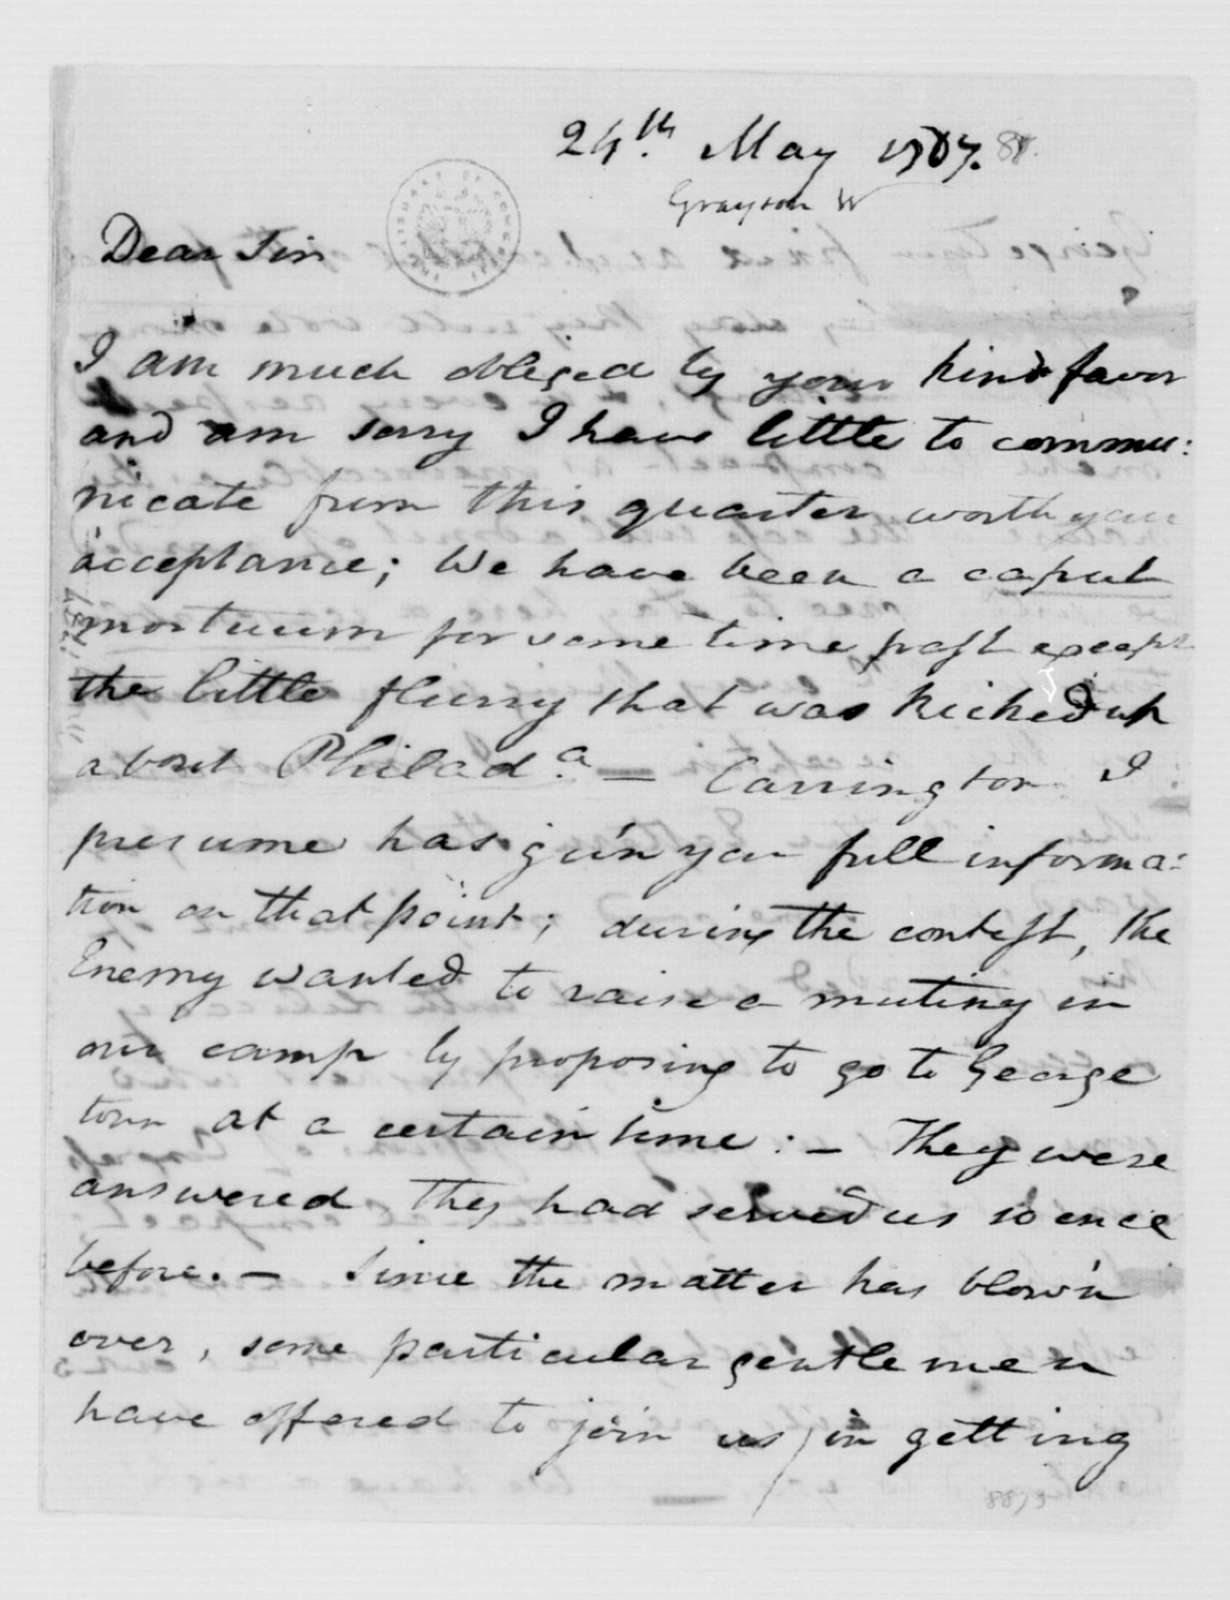 William Grayson to James Madison, May 24, 1787.